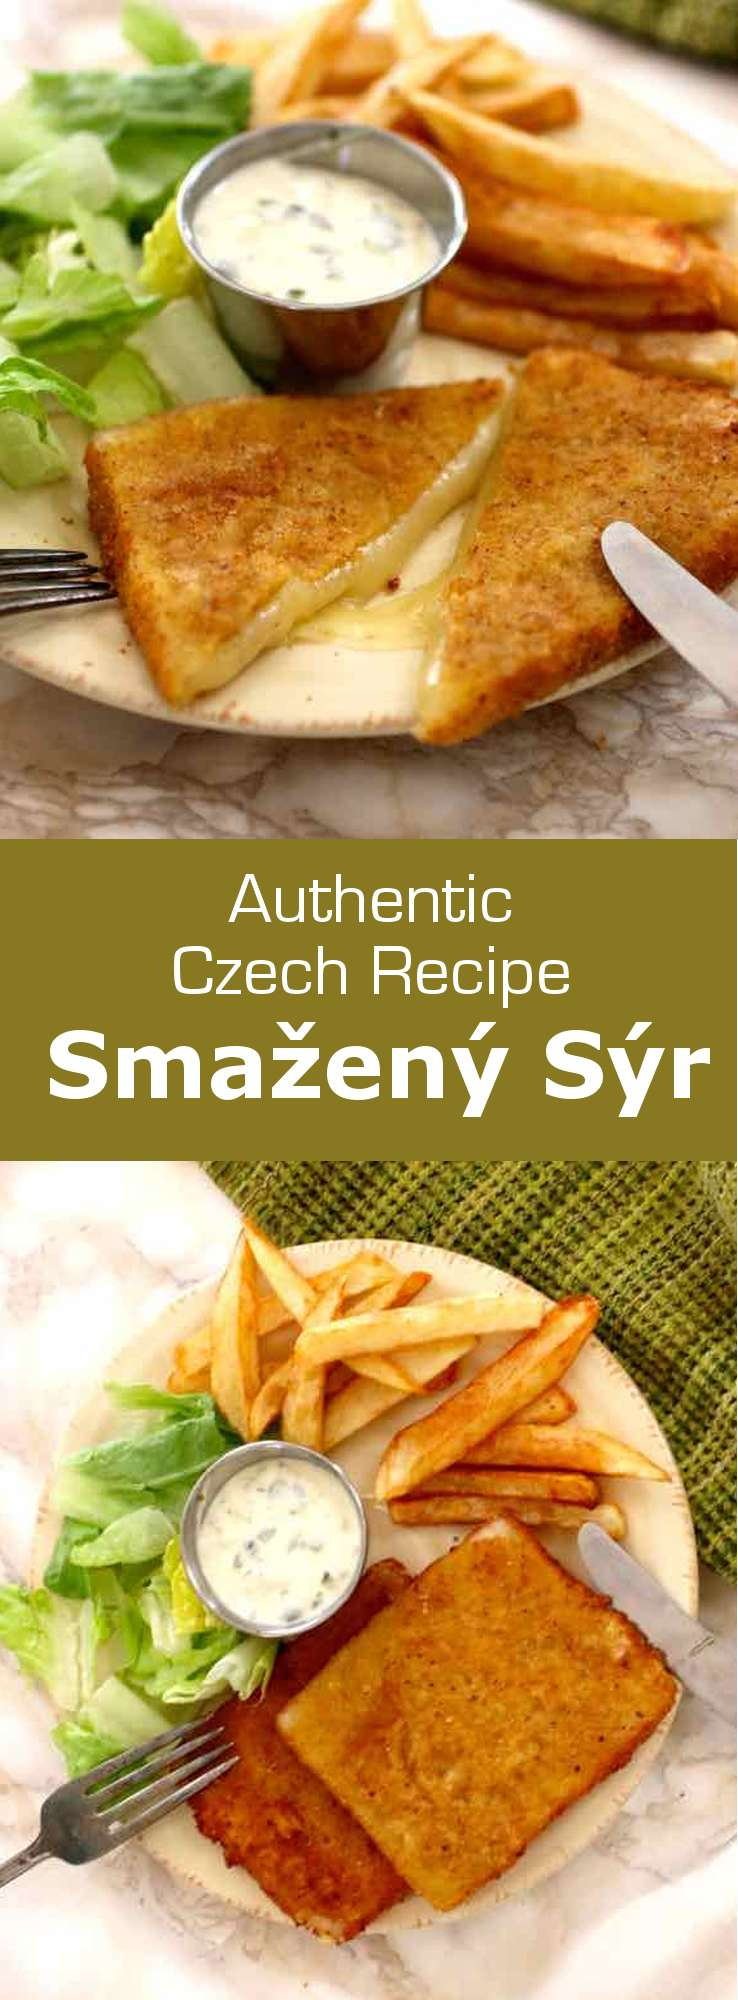 Smažený sýr (fried cheese in Czech) is prepared with slices of cheese that are breaded before being fried. It is traditionally served with tartar sauce and French fries. #CzechRepublic #CzechCuisine #CzechRecipe #Cheese #CheeseRecipe #Vegetarian #WorldCuisine #196flavors